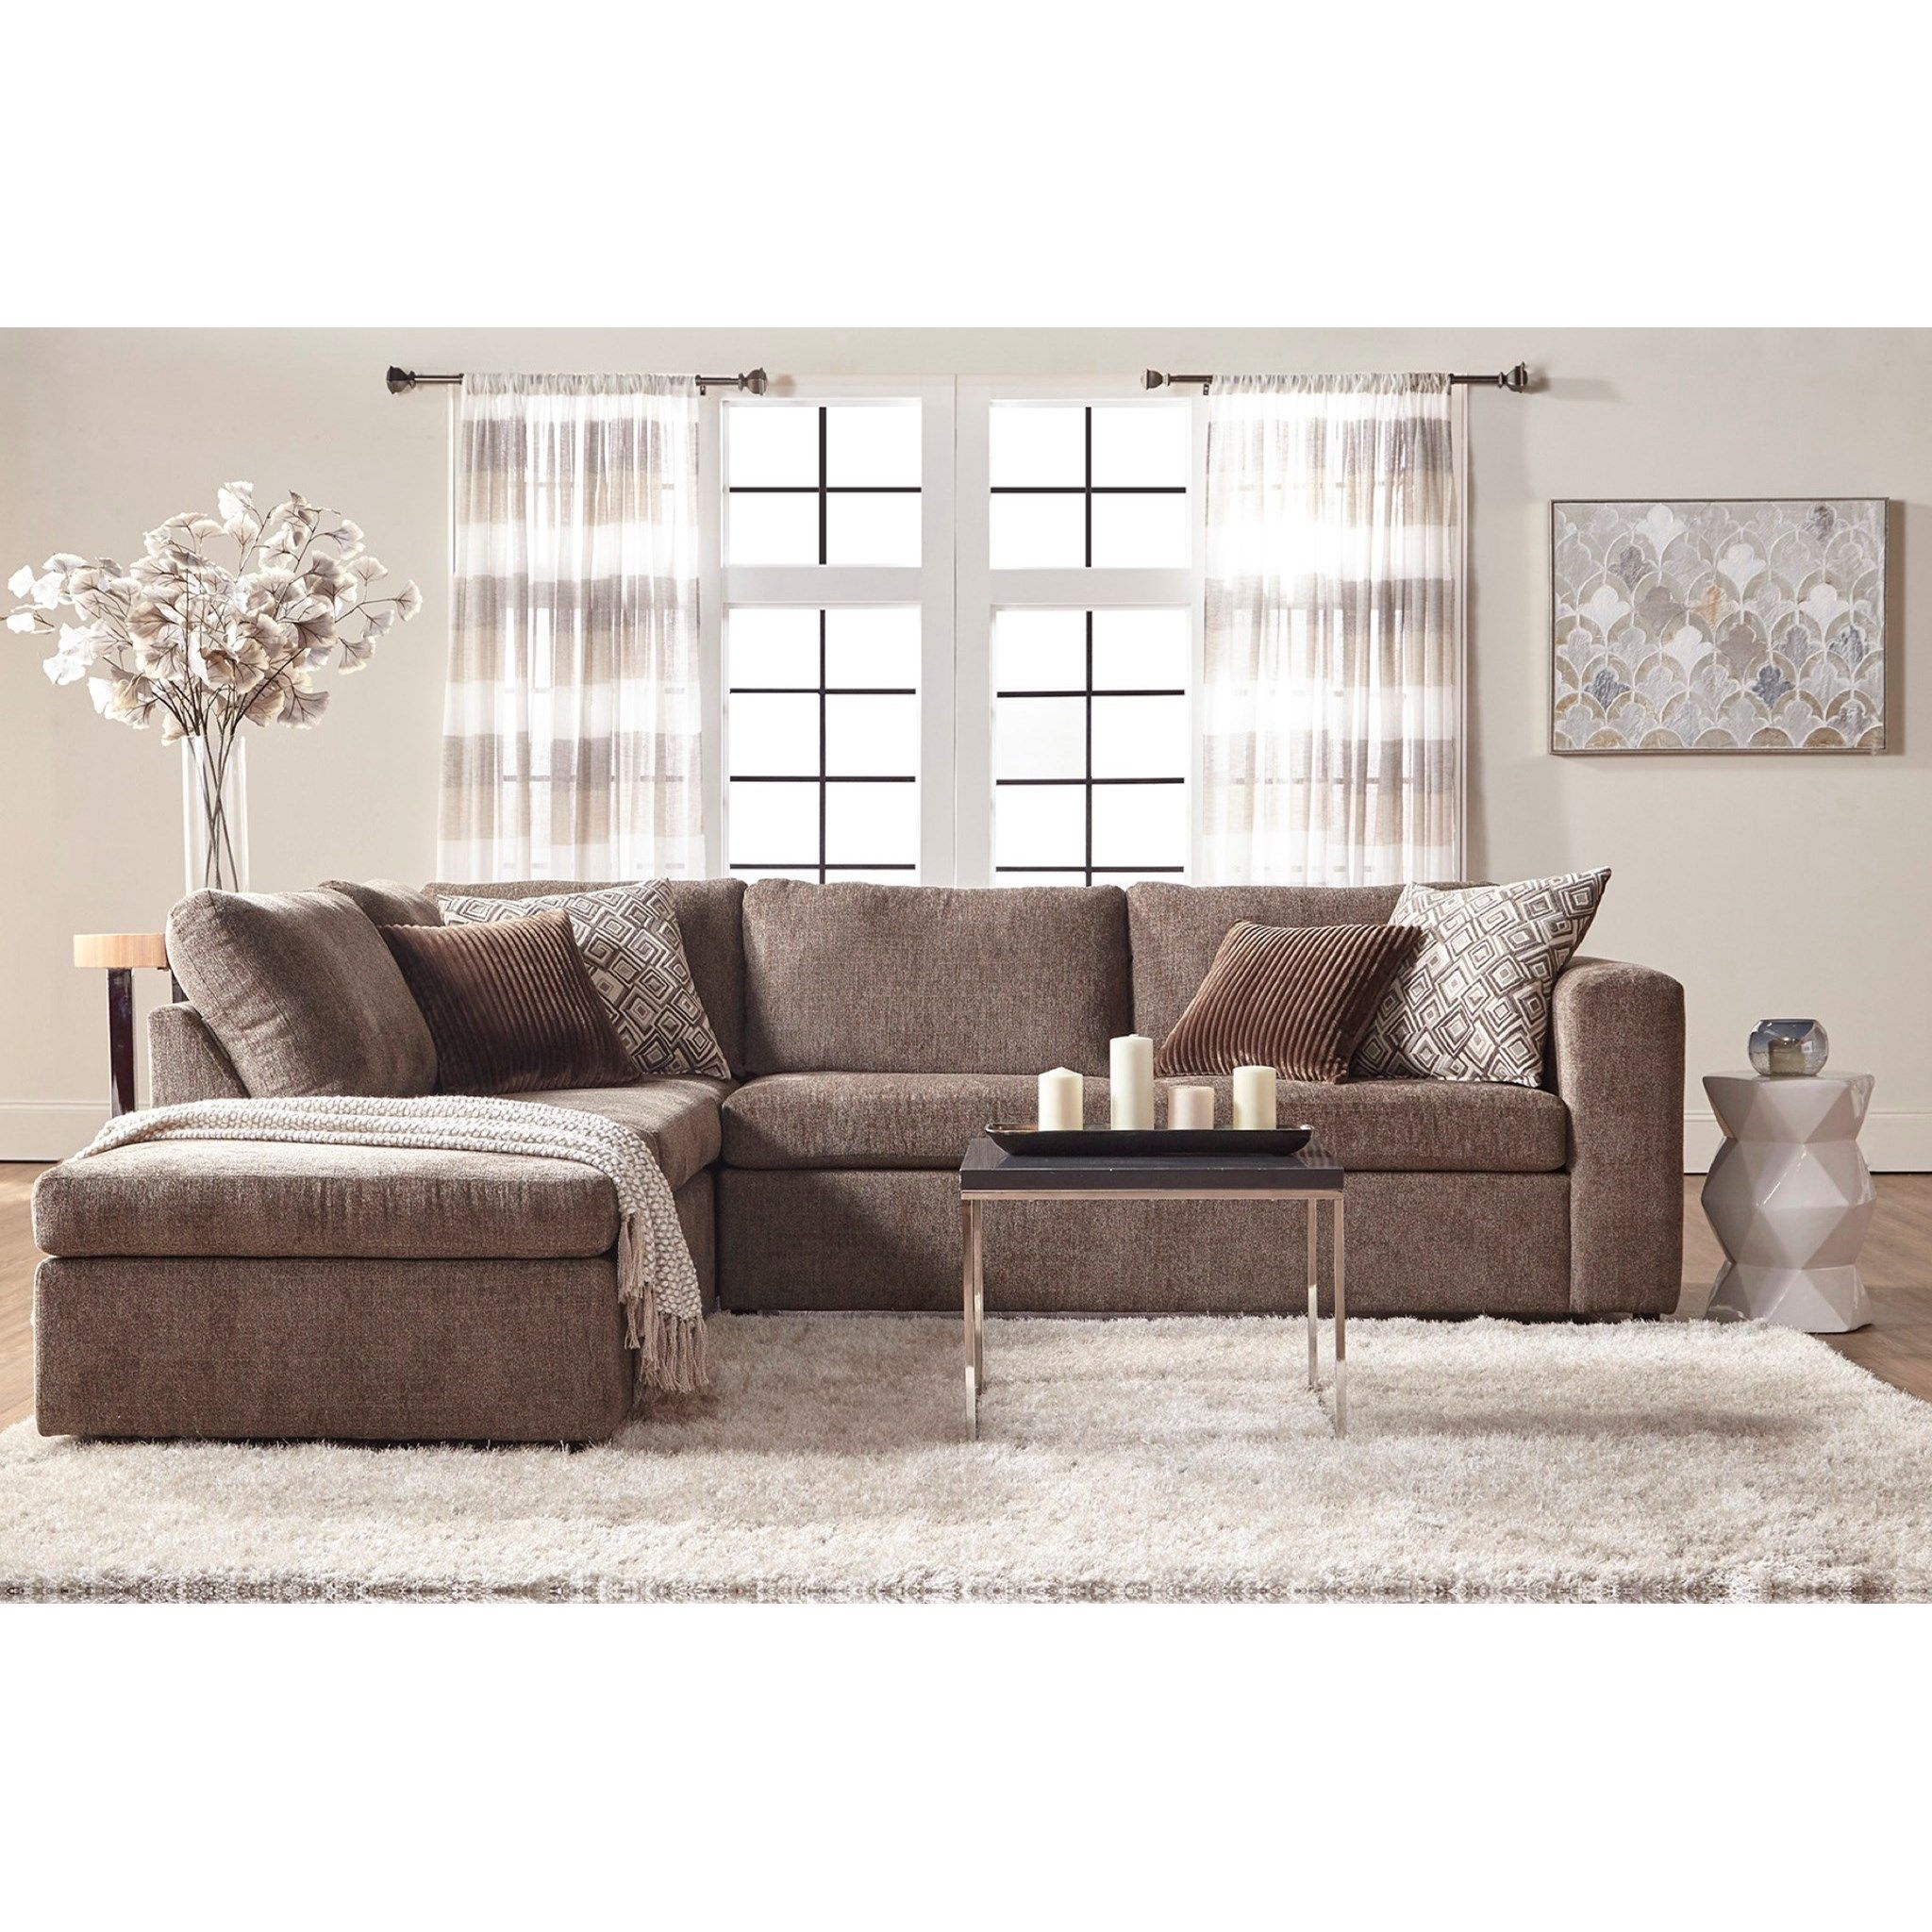 1100 Casual Contemporary Sectional Sofa With Chaise By Serta